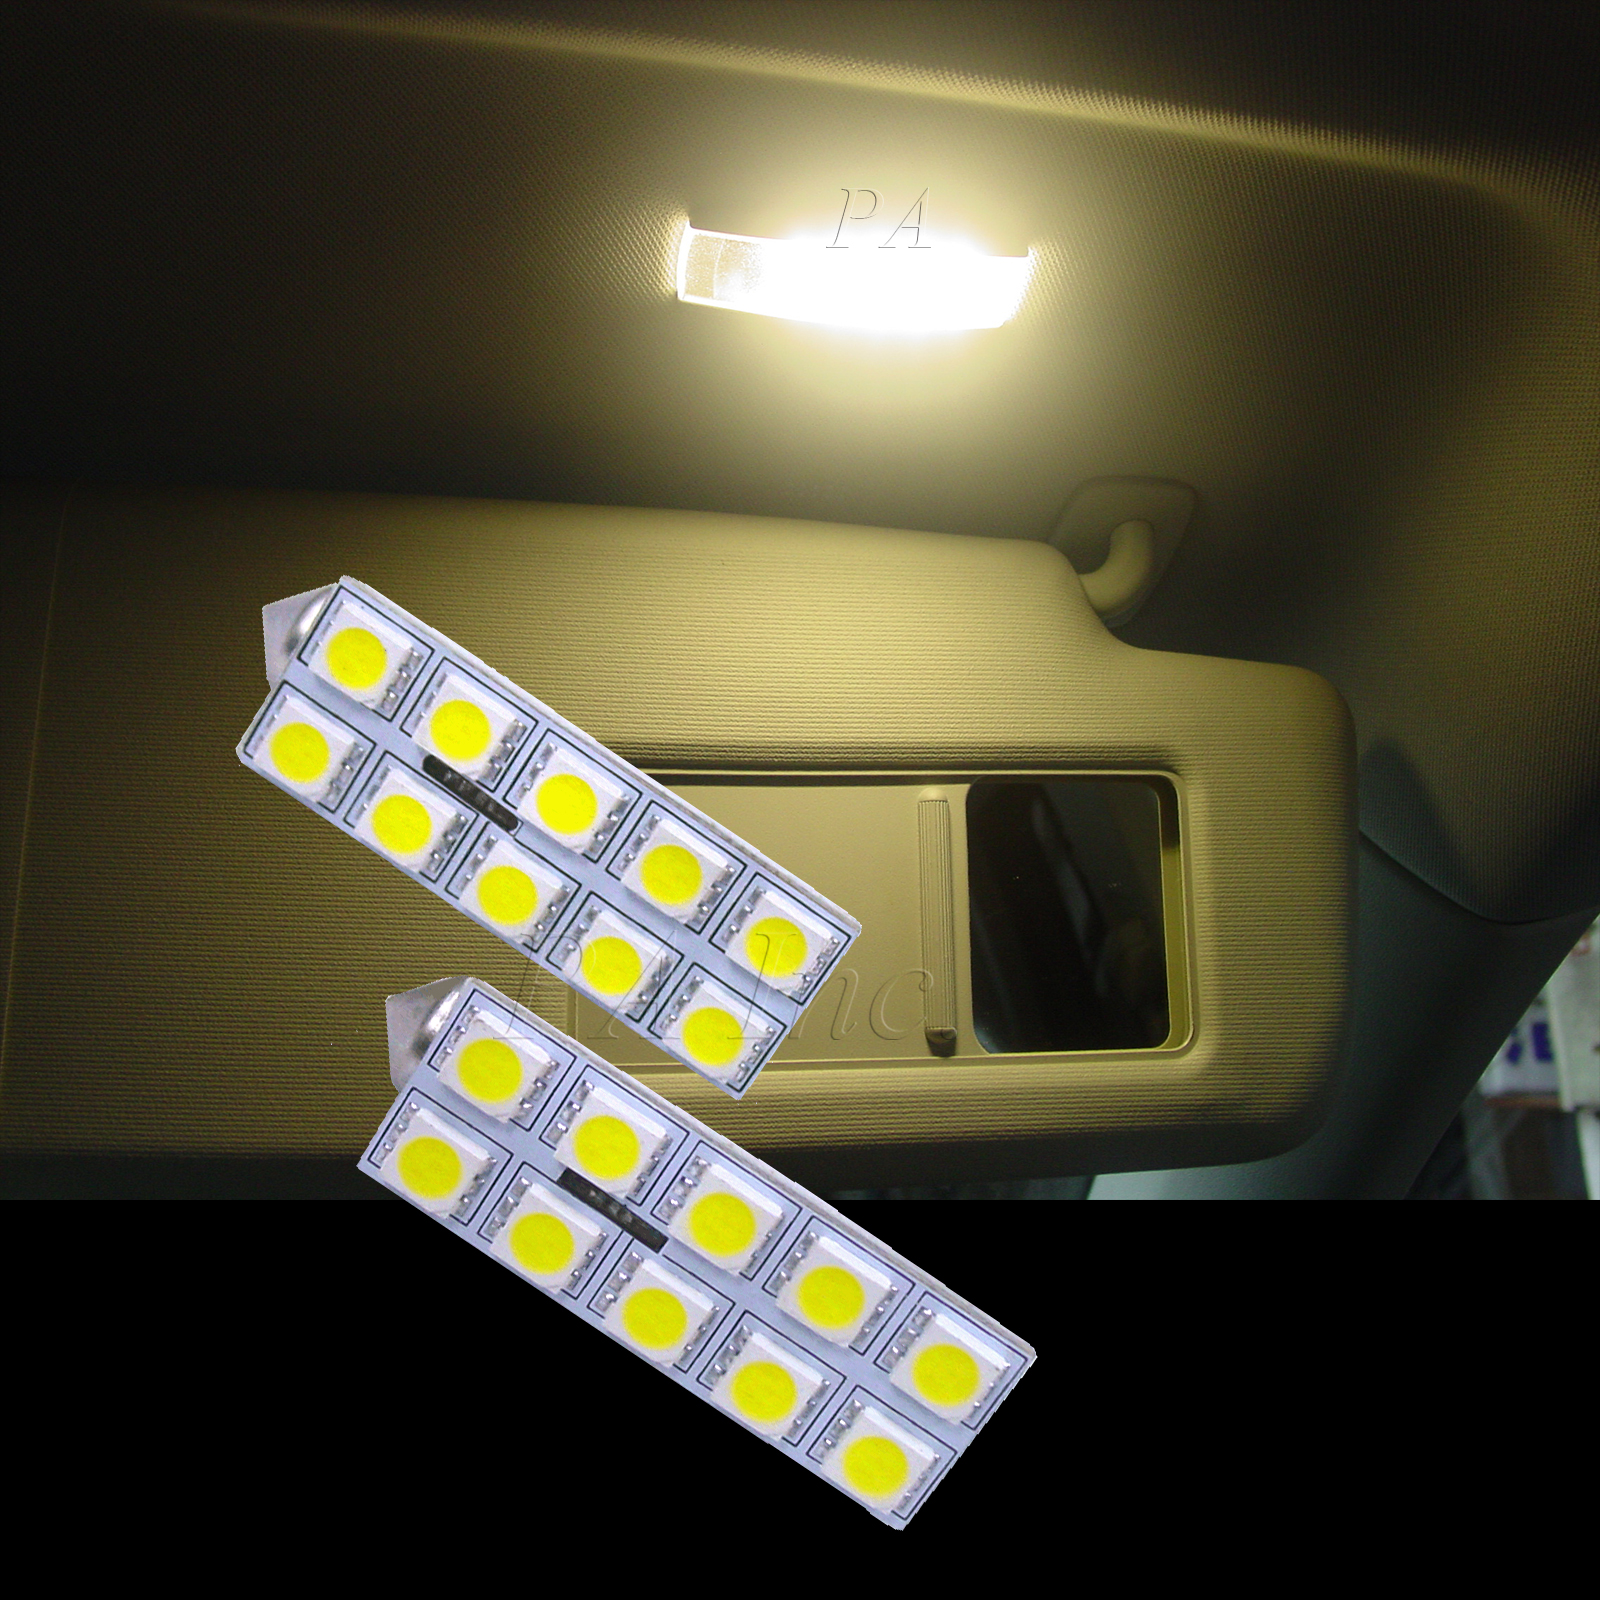 Vanity Lamp In Car : 4x VW Car Tiguan Golf Touran 10 5050 LED Vanity Mirror Light Warm White OBC Free eBay